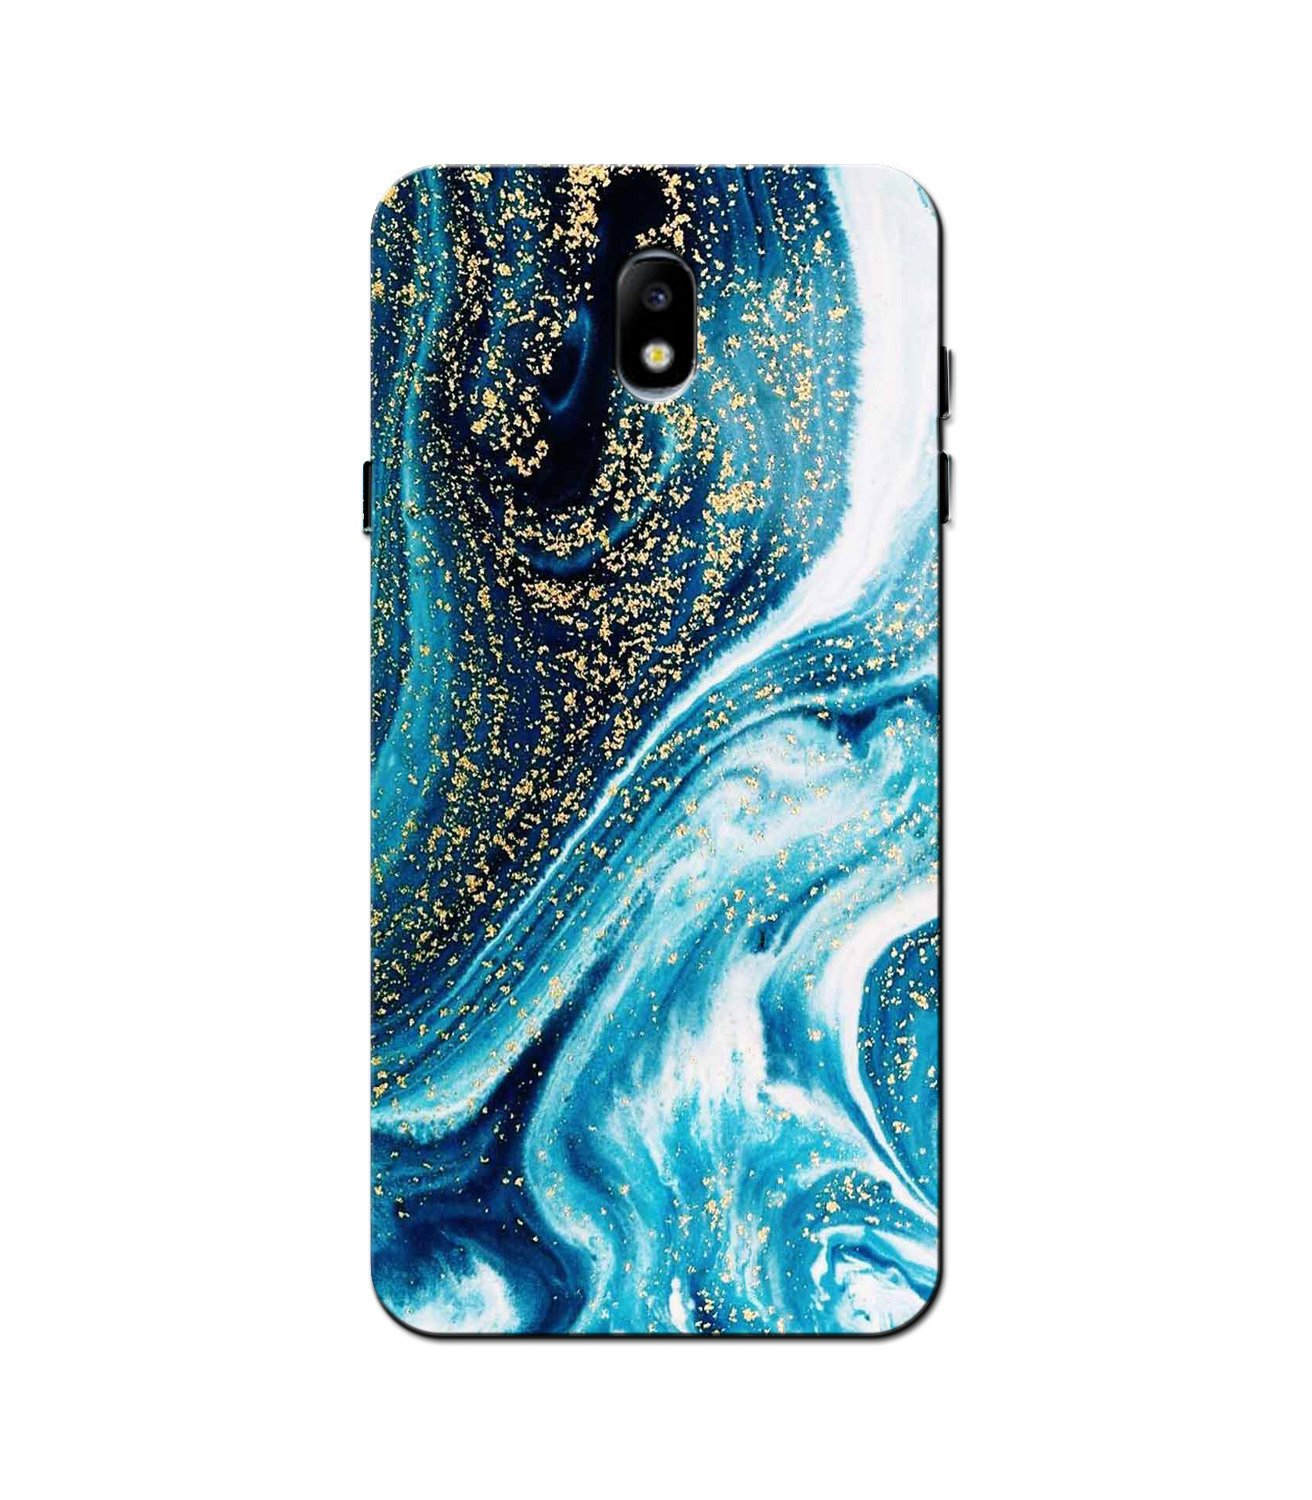 Marble Texture Mobile Back Case for Galaxy J5 Pro  (Design - 308)